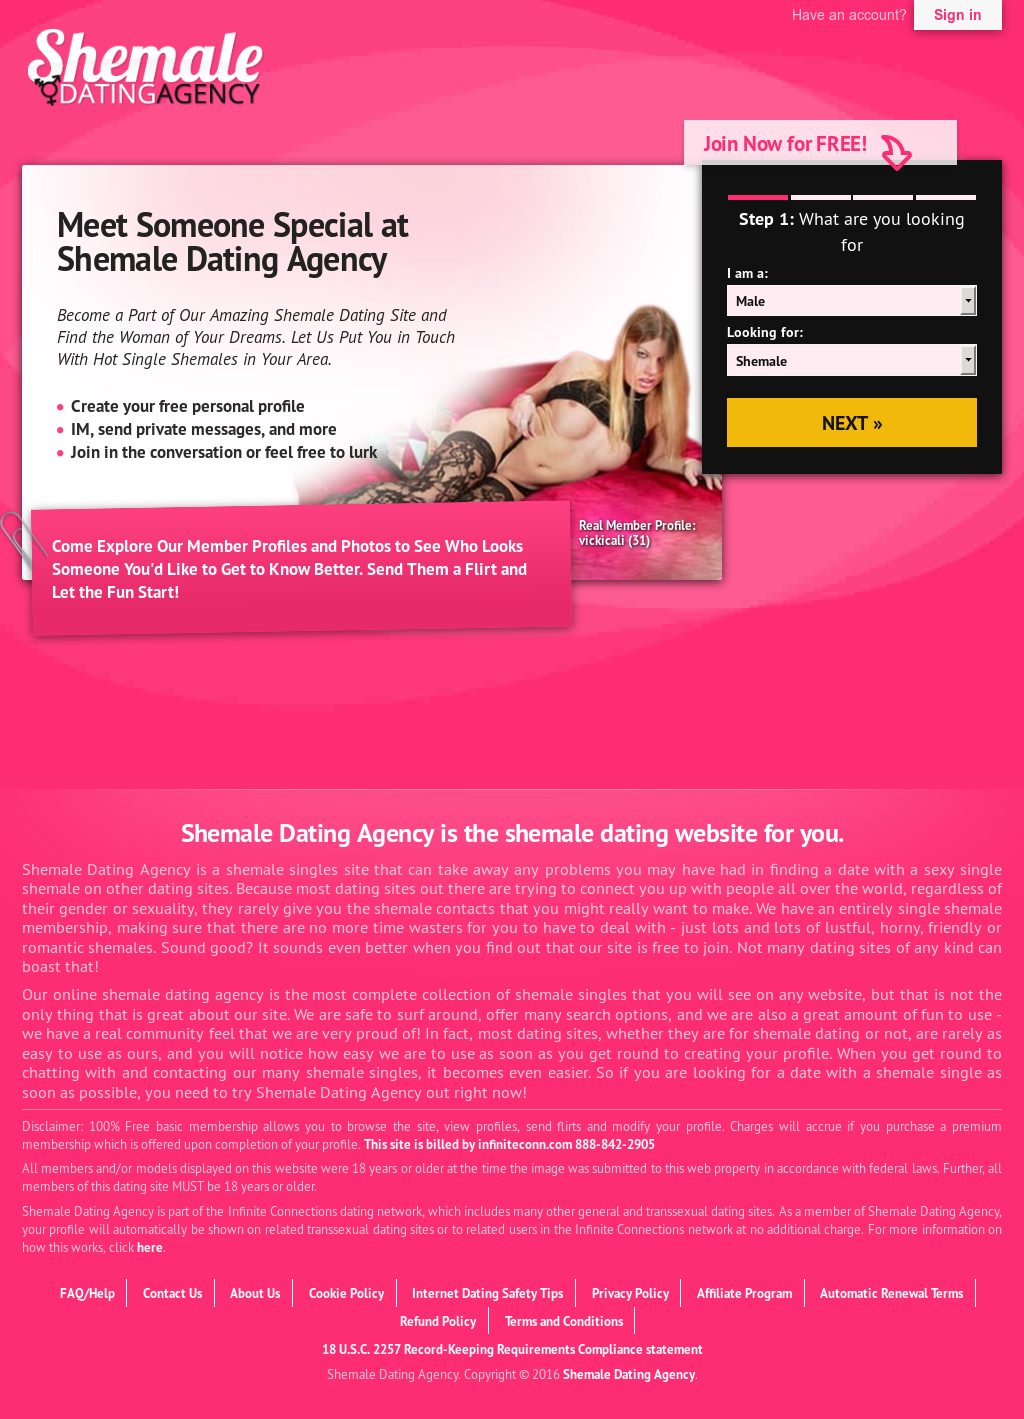 shemale dating site Trans date is the worlds best transgender dating site if ts dating is your thing then this is the dating site for you find a local ts to have fun with tonight.